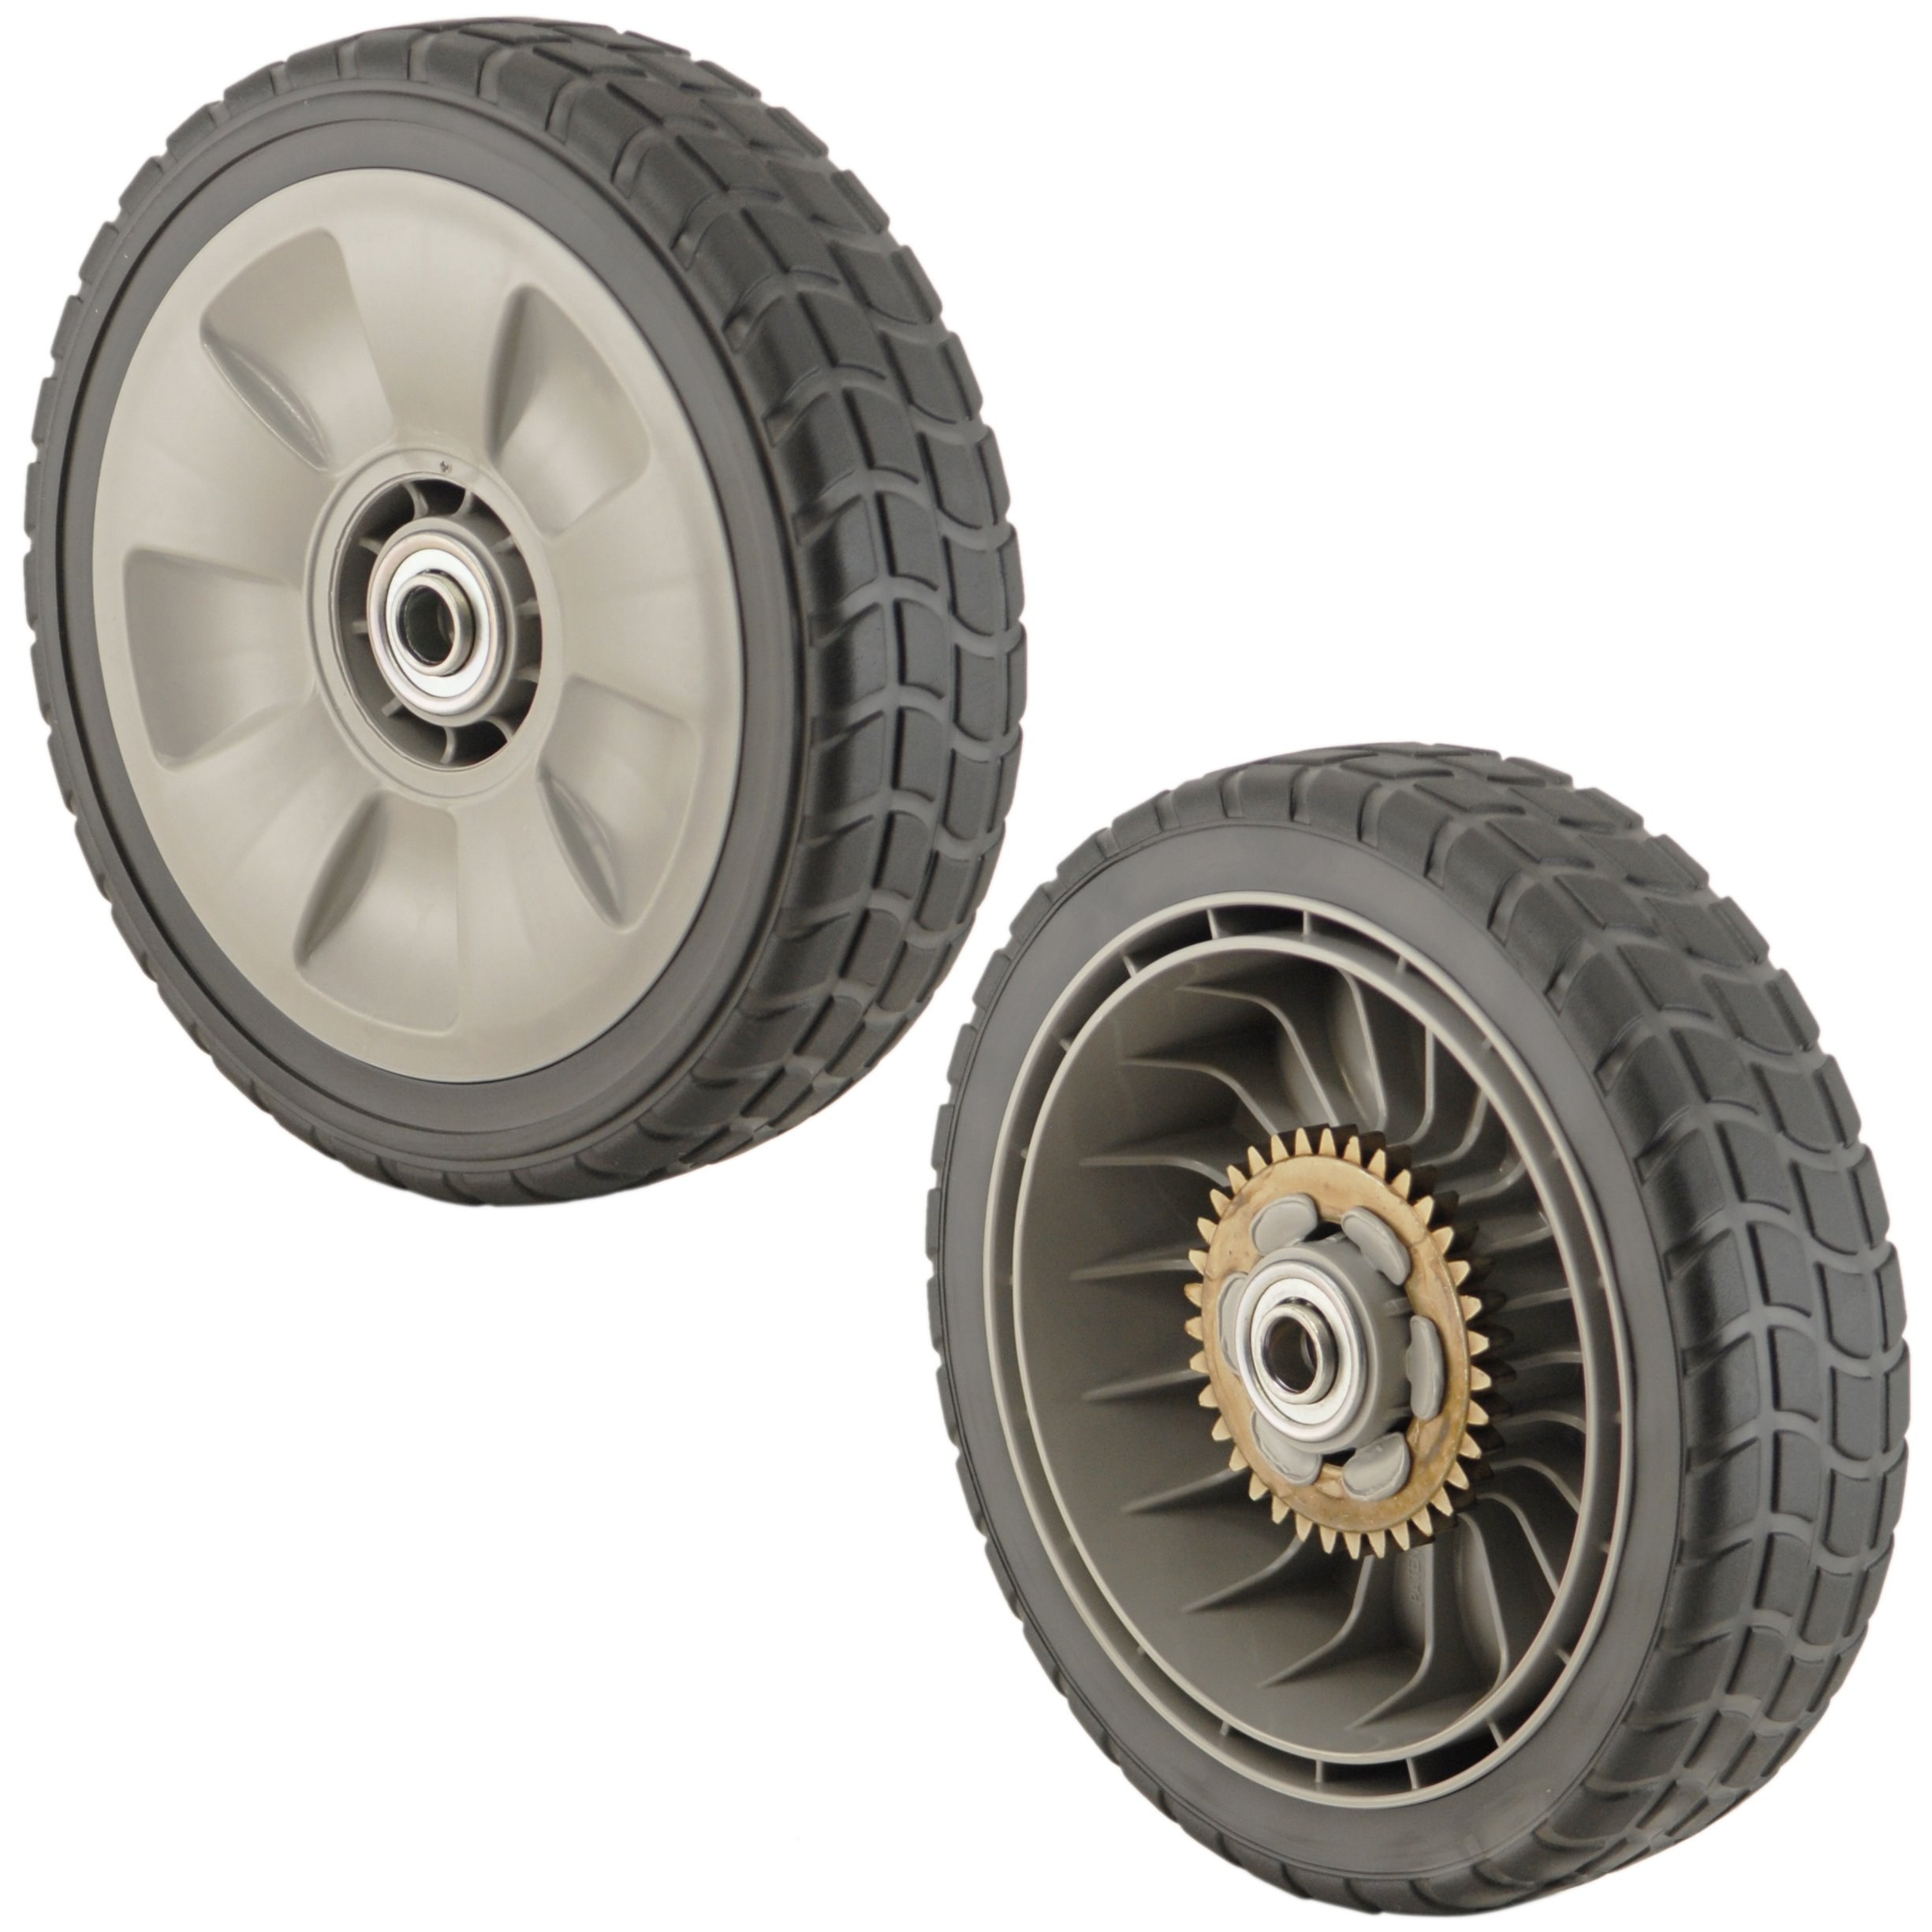 Lawn Tractor Rear Rims : Honda ve m ze lawn mower rear wheel set of ebay